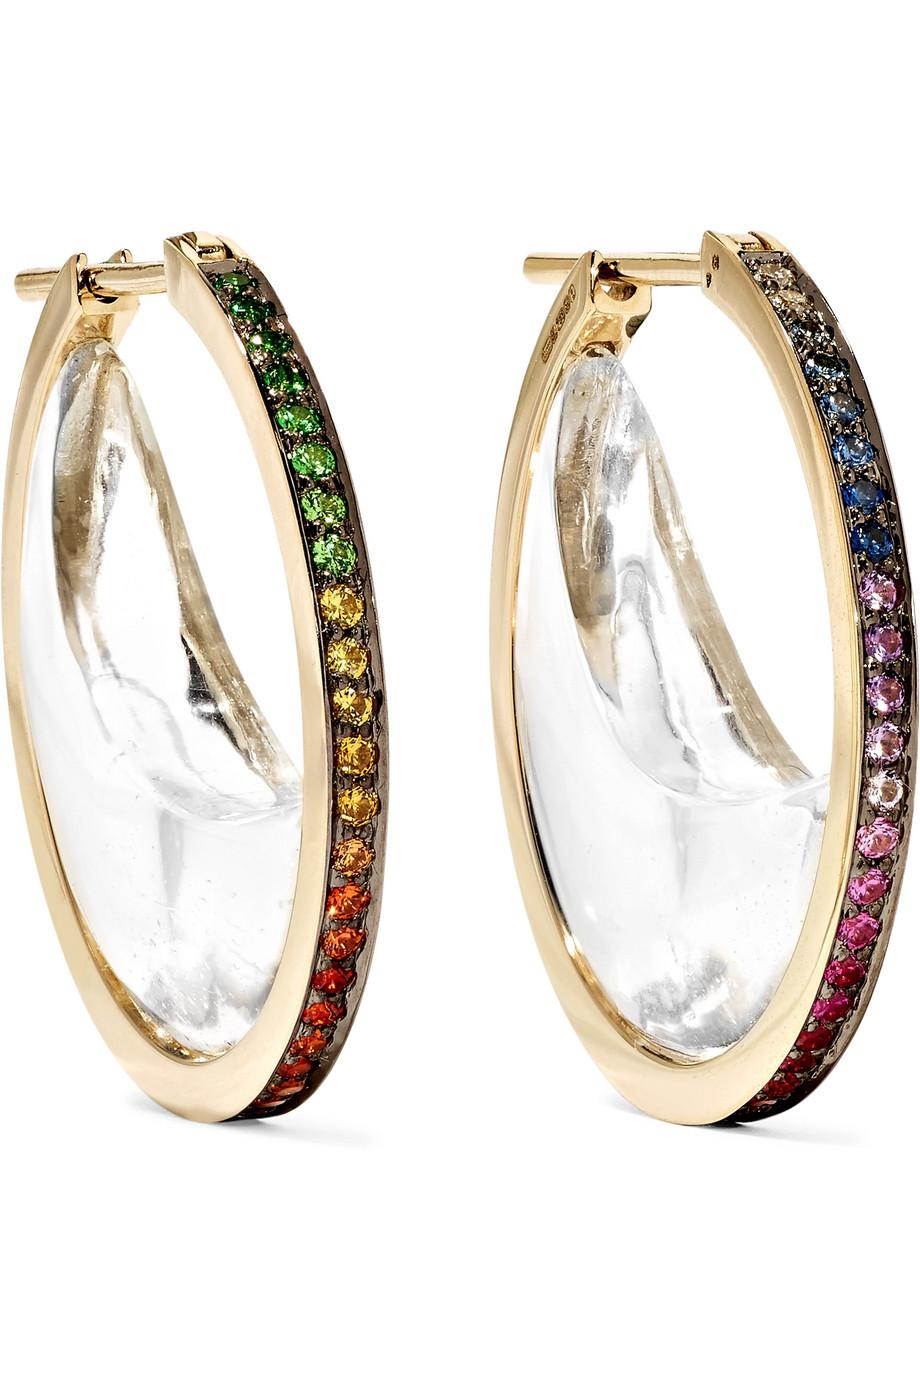 Noor Fares 18-karat Gray Gold Multi-stone Earrings a0Xt4